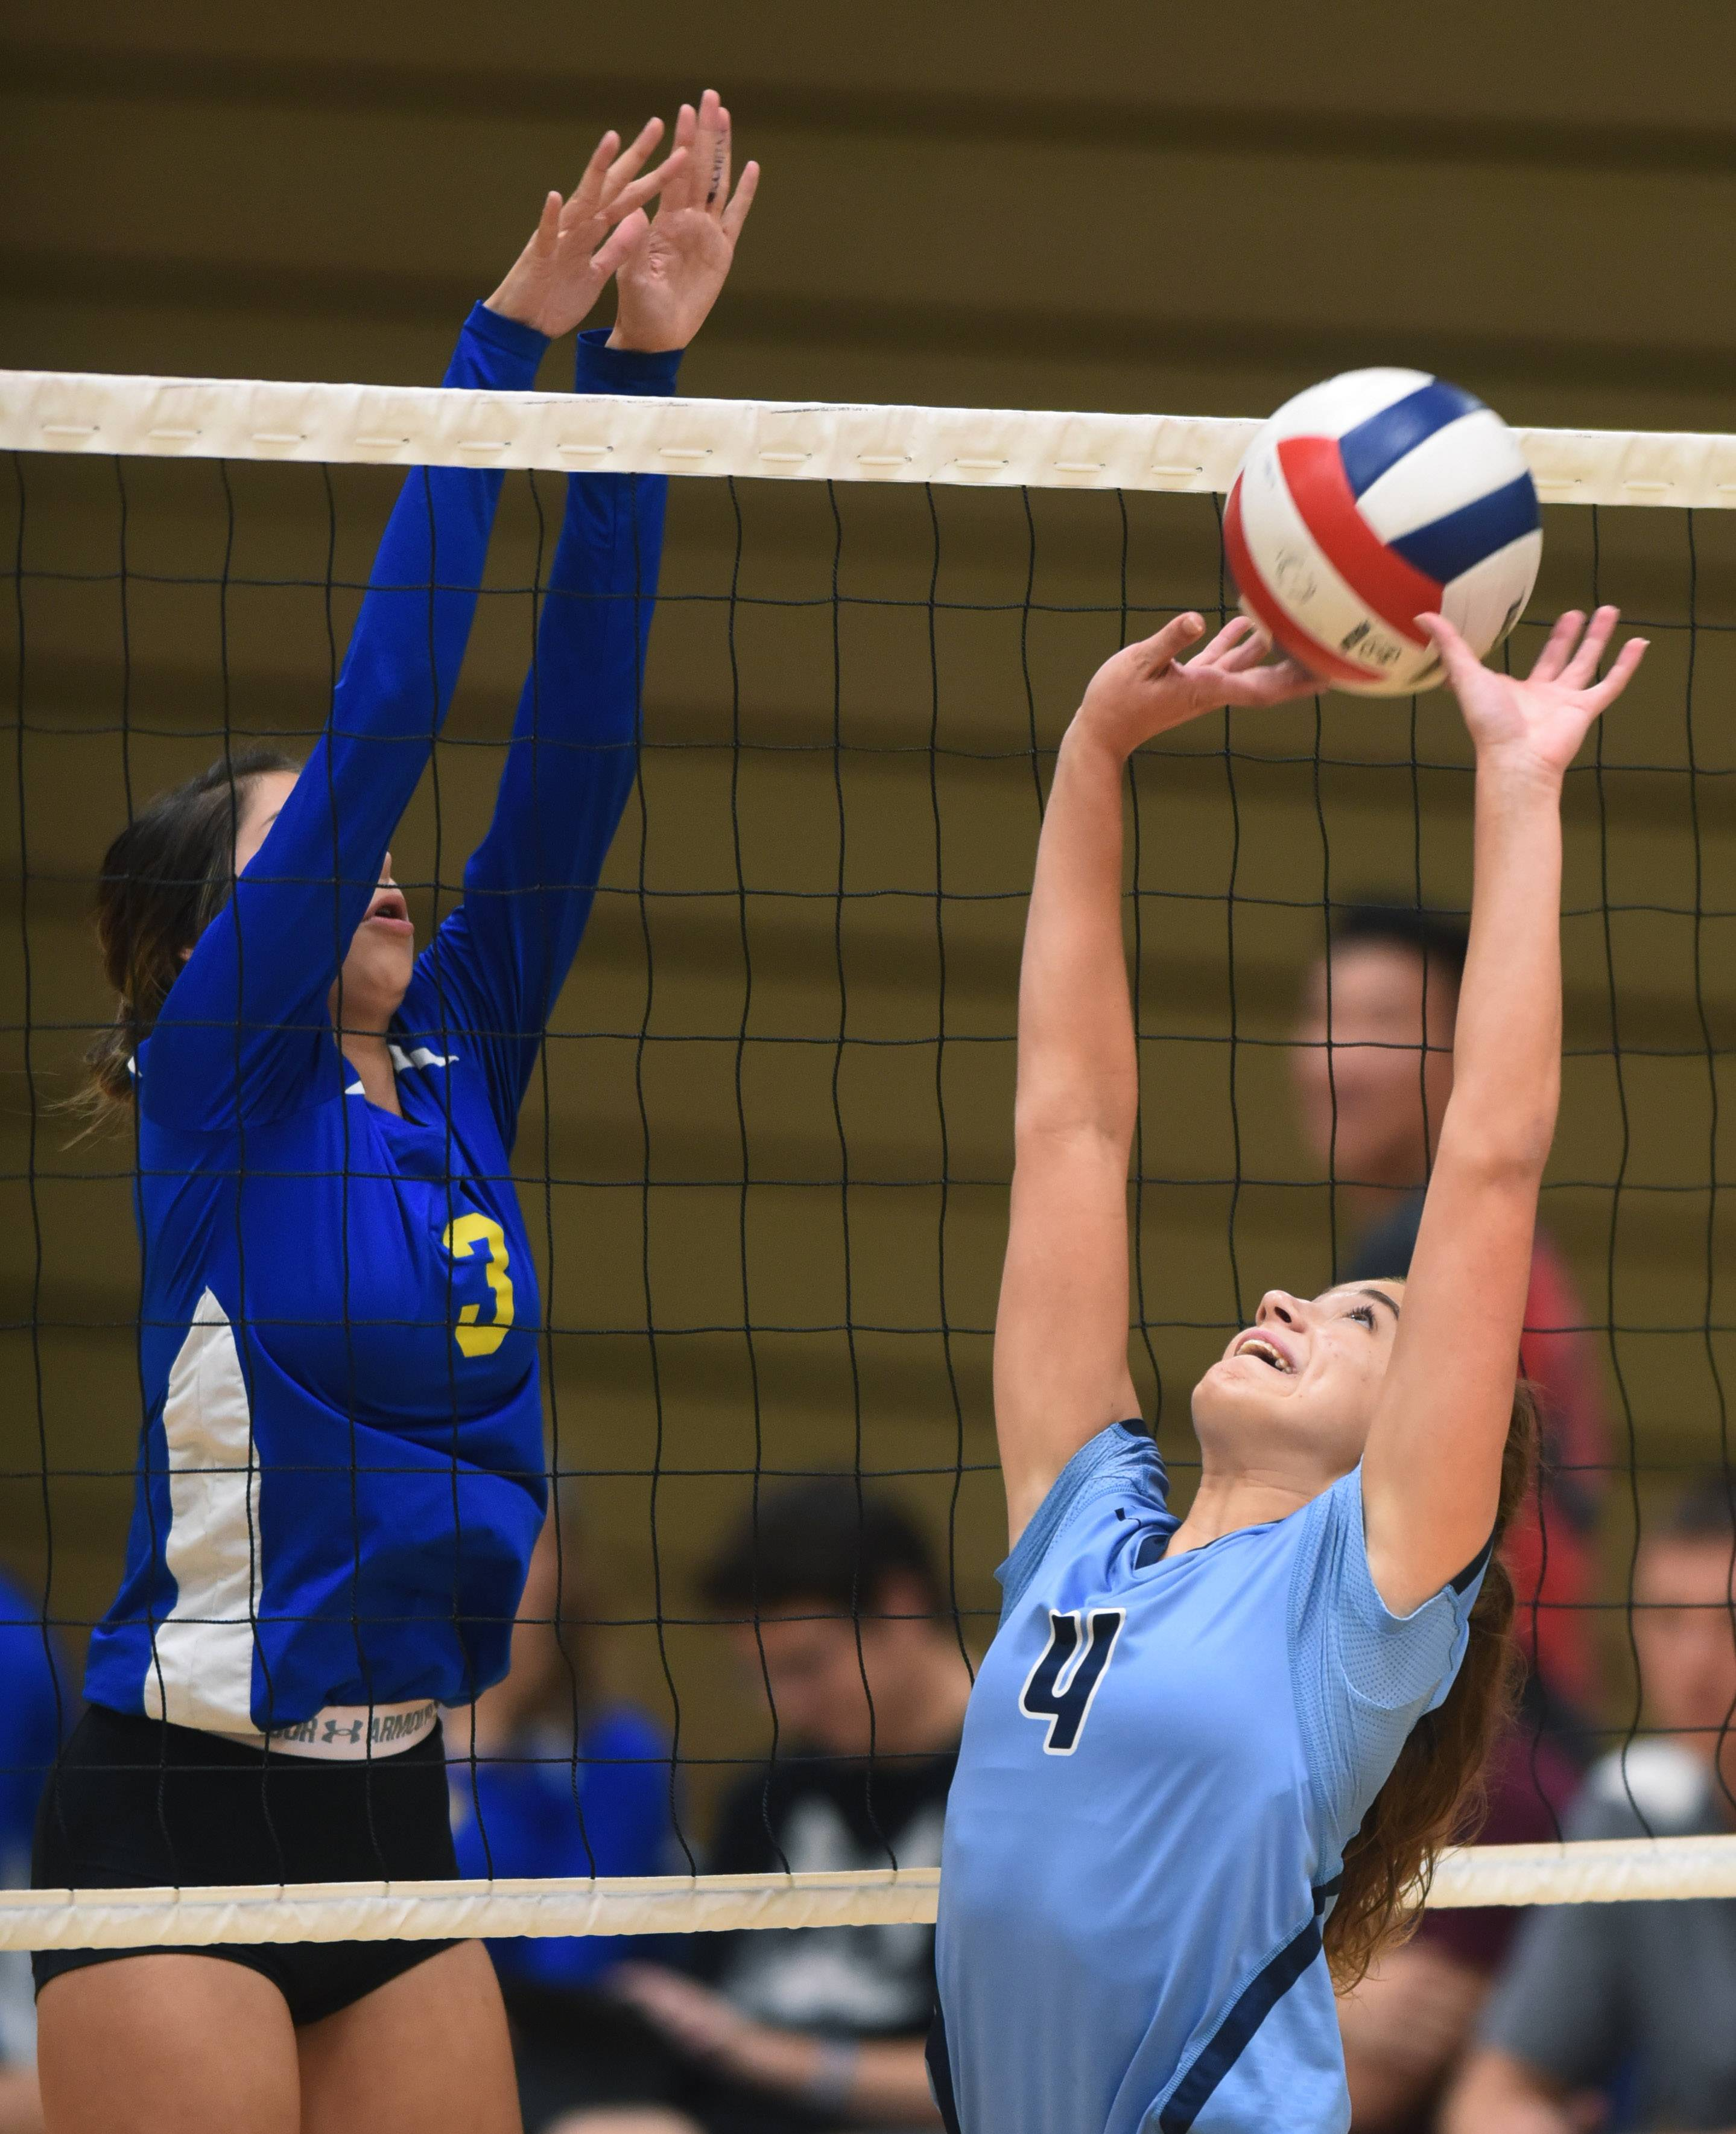 Prospect's Sarah Skaggs sets the ball in front of Wheeling's Nicole Nguyen during Tuesday's match in Wheeling.